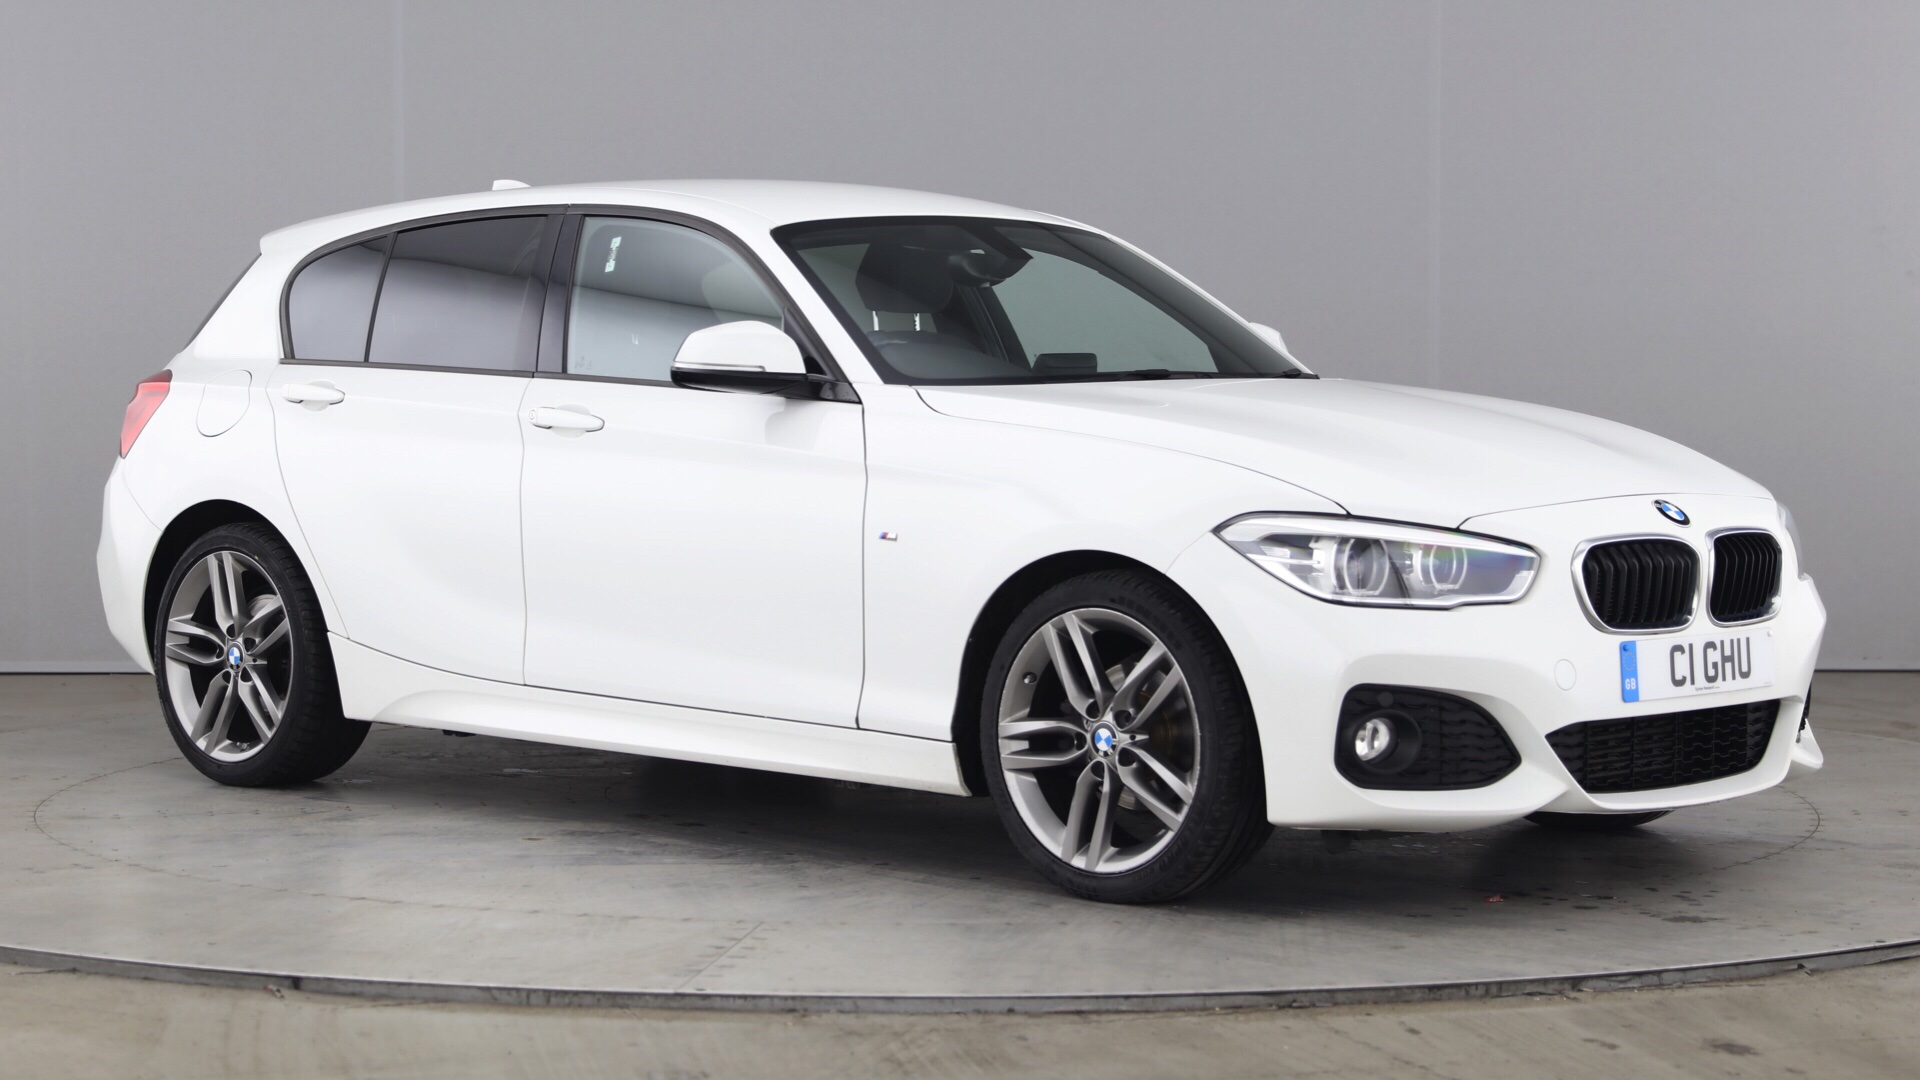 Used BMW 1 Series 118i [1 5] M Sport 5dr [Nav] White Hatchback For Sale in  Southampton Reg:CA16 PXR